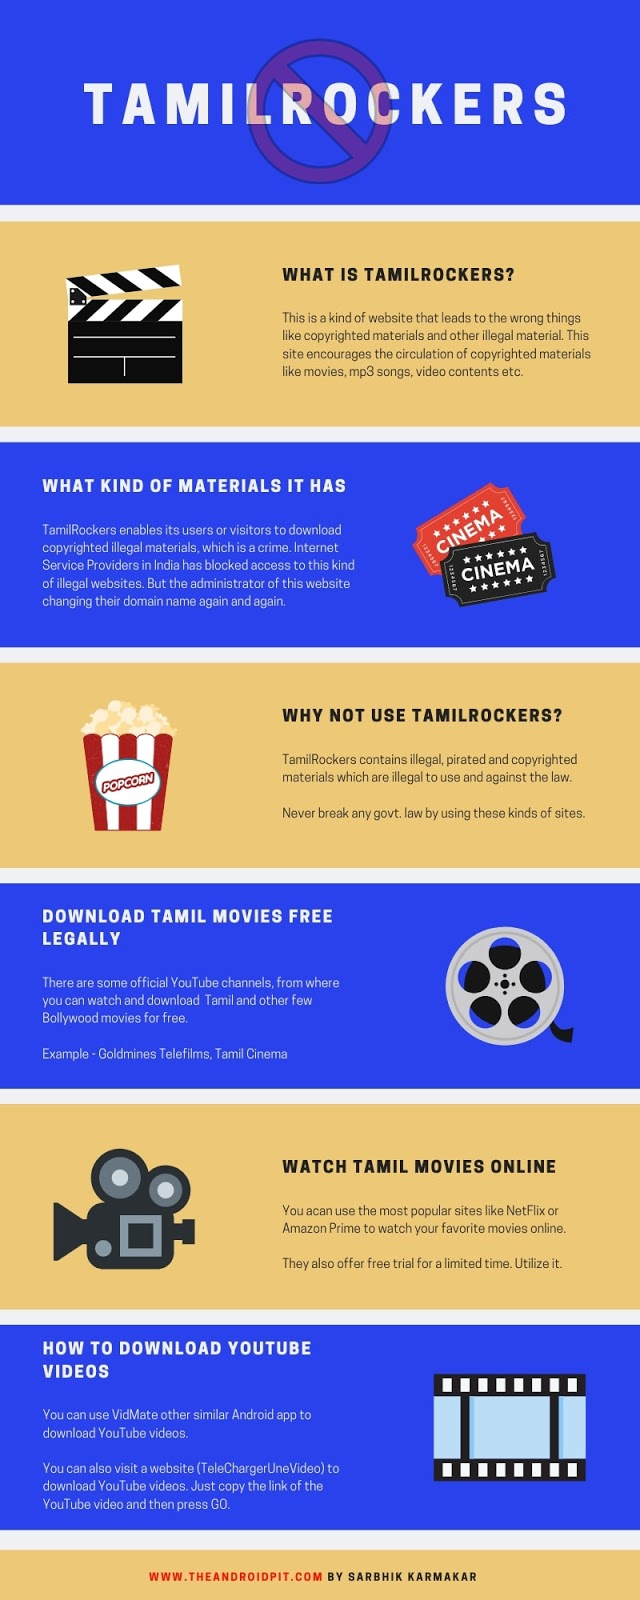 TamilRockers - Download Tamil Movies LEGALLY without TamilRockers